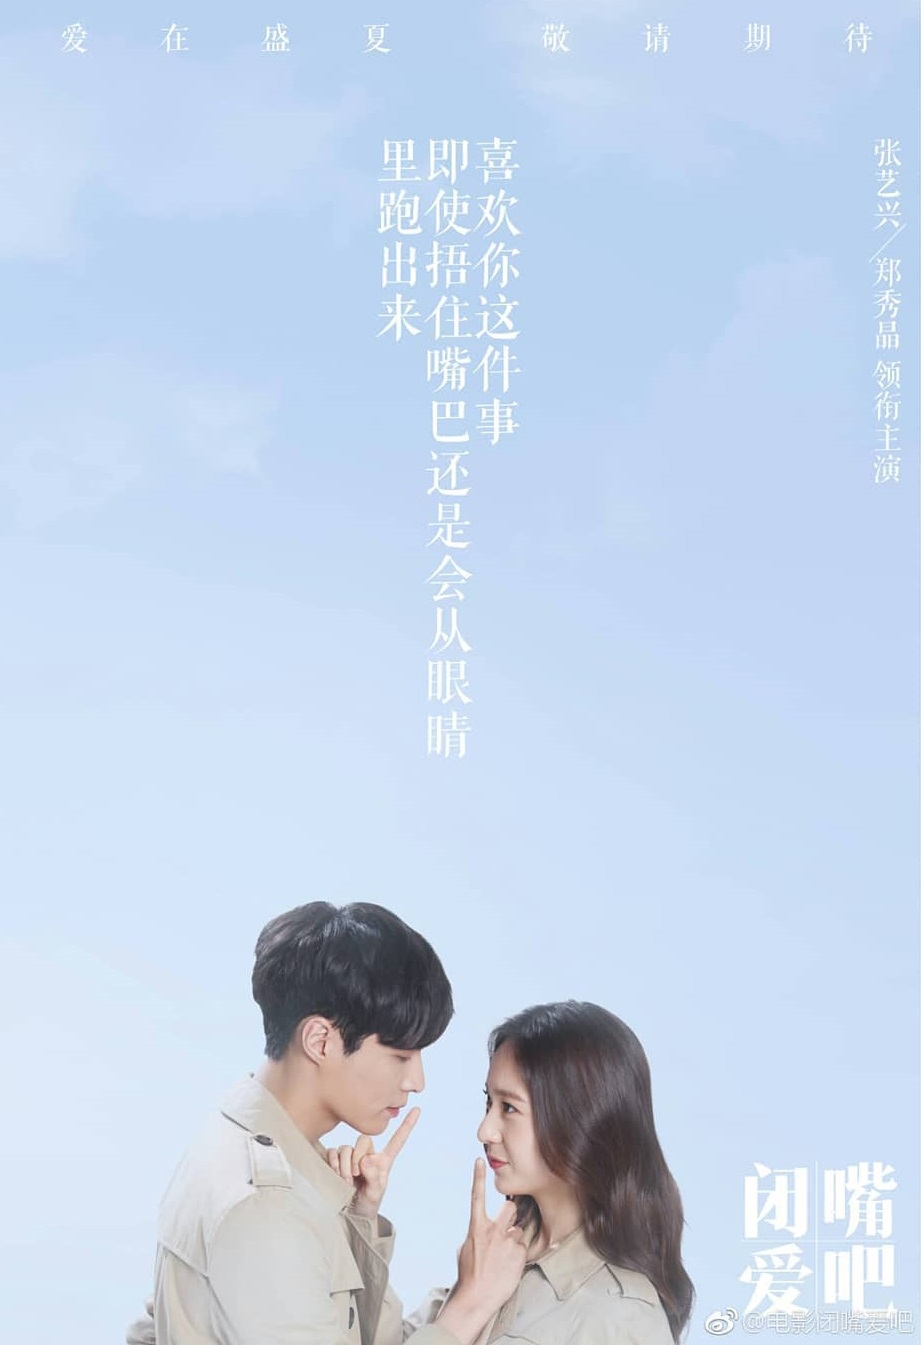 Lay And Krystal S Film Unexpected Love Will Finally Be Released